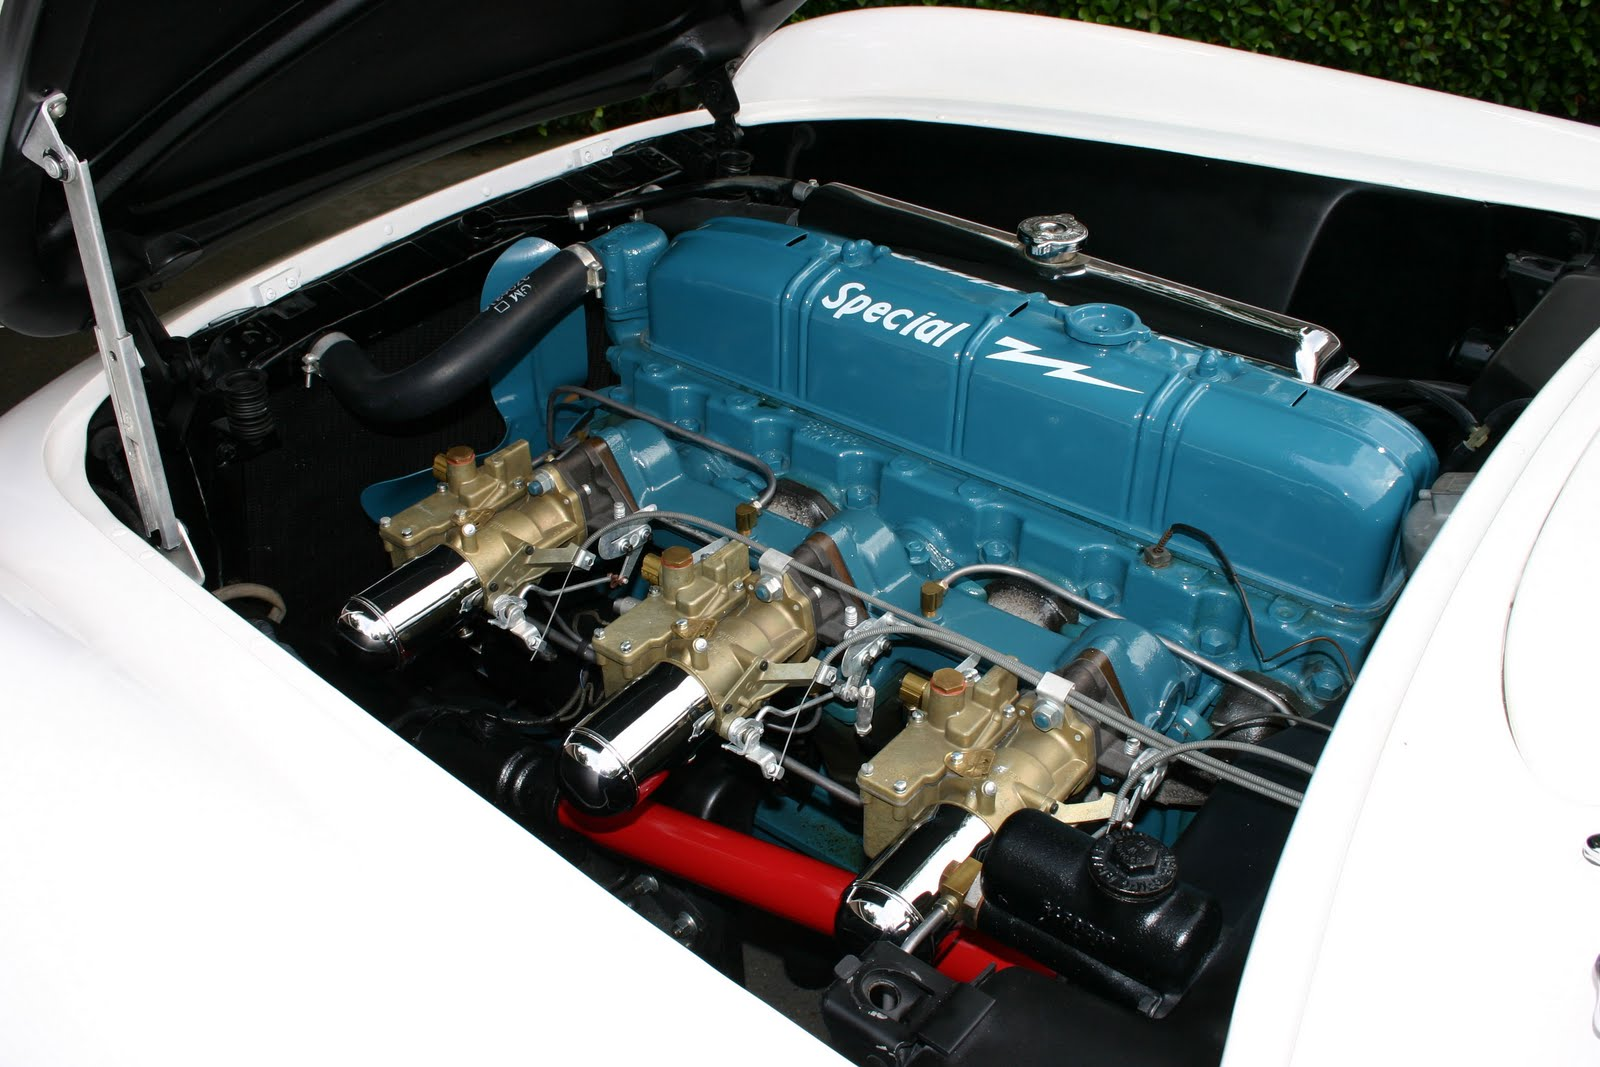 The Allgm Blog 1953 Chevrolet Corvette. A 150hp Blue Flame Special Powered All 1953 Corvettes It Was Modified Version Of The Engine Used In Other Chevy Passenger Cars. Corvette. 1953 Corvette Engine Wiring At Scoala.co